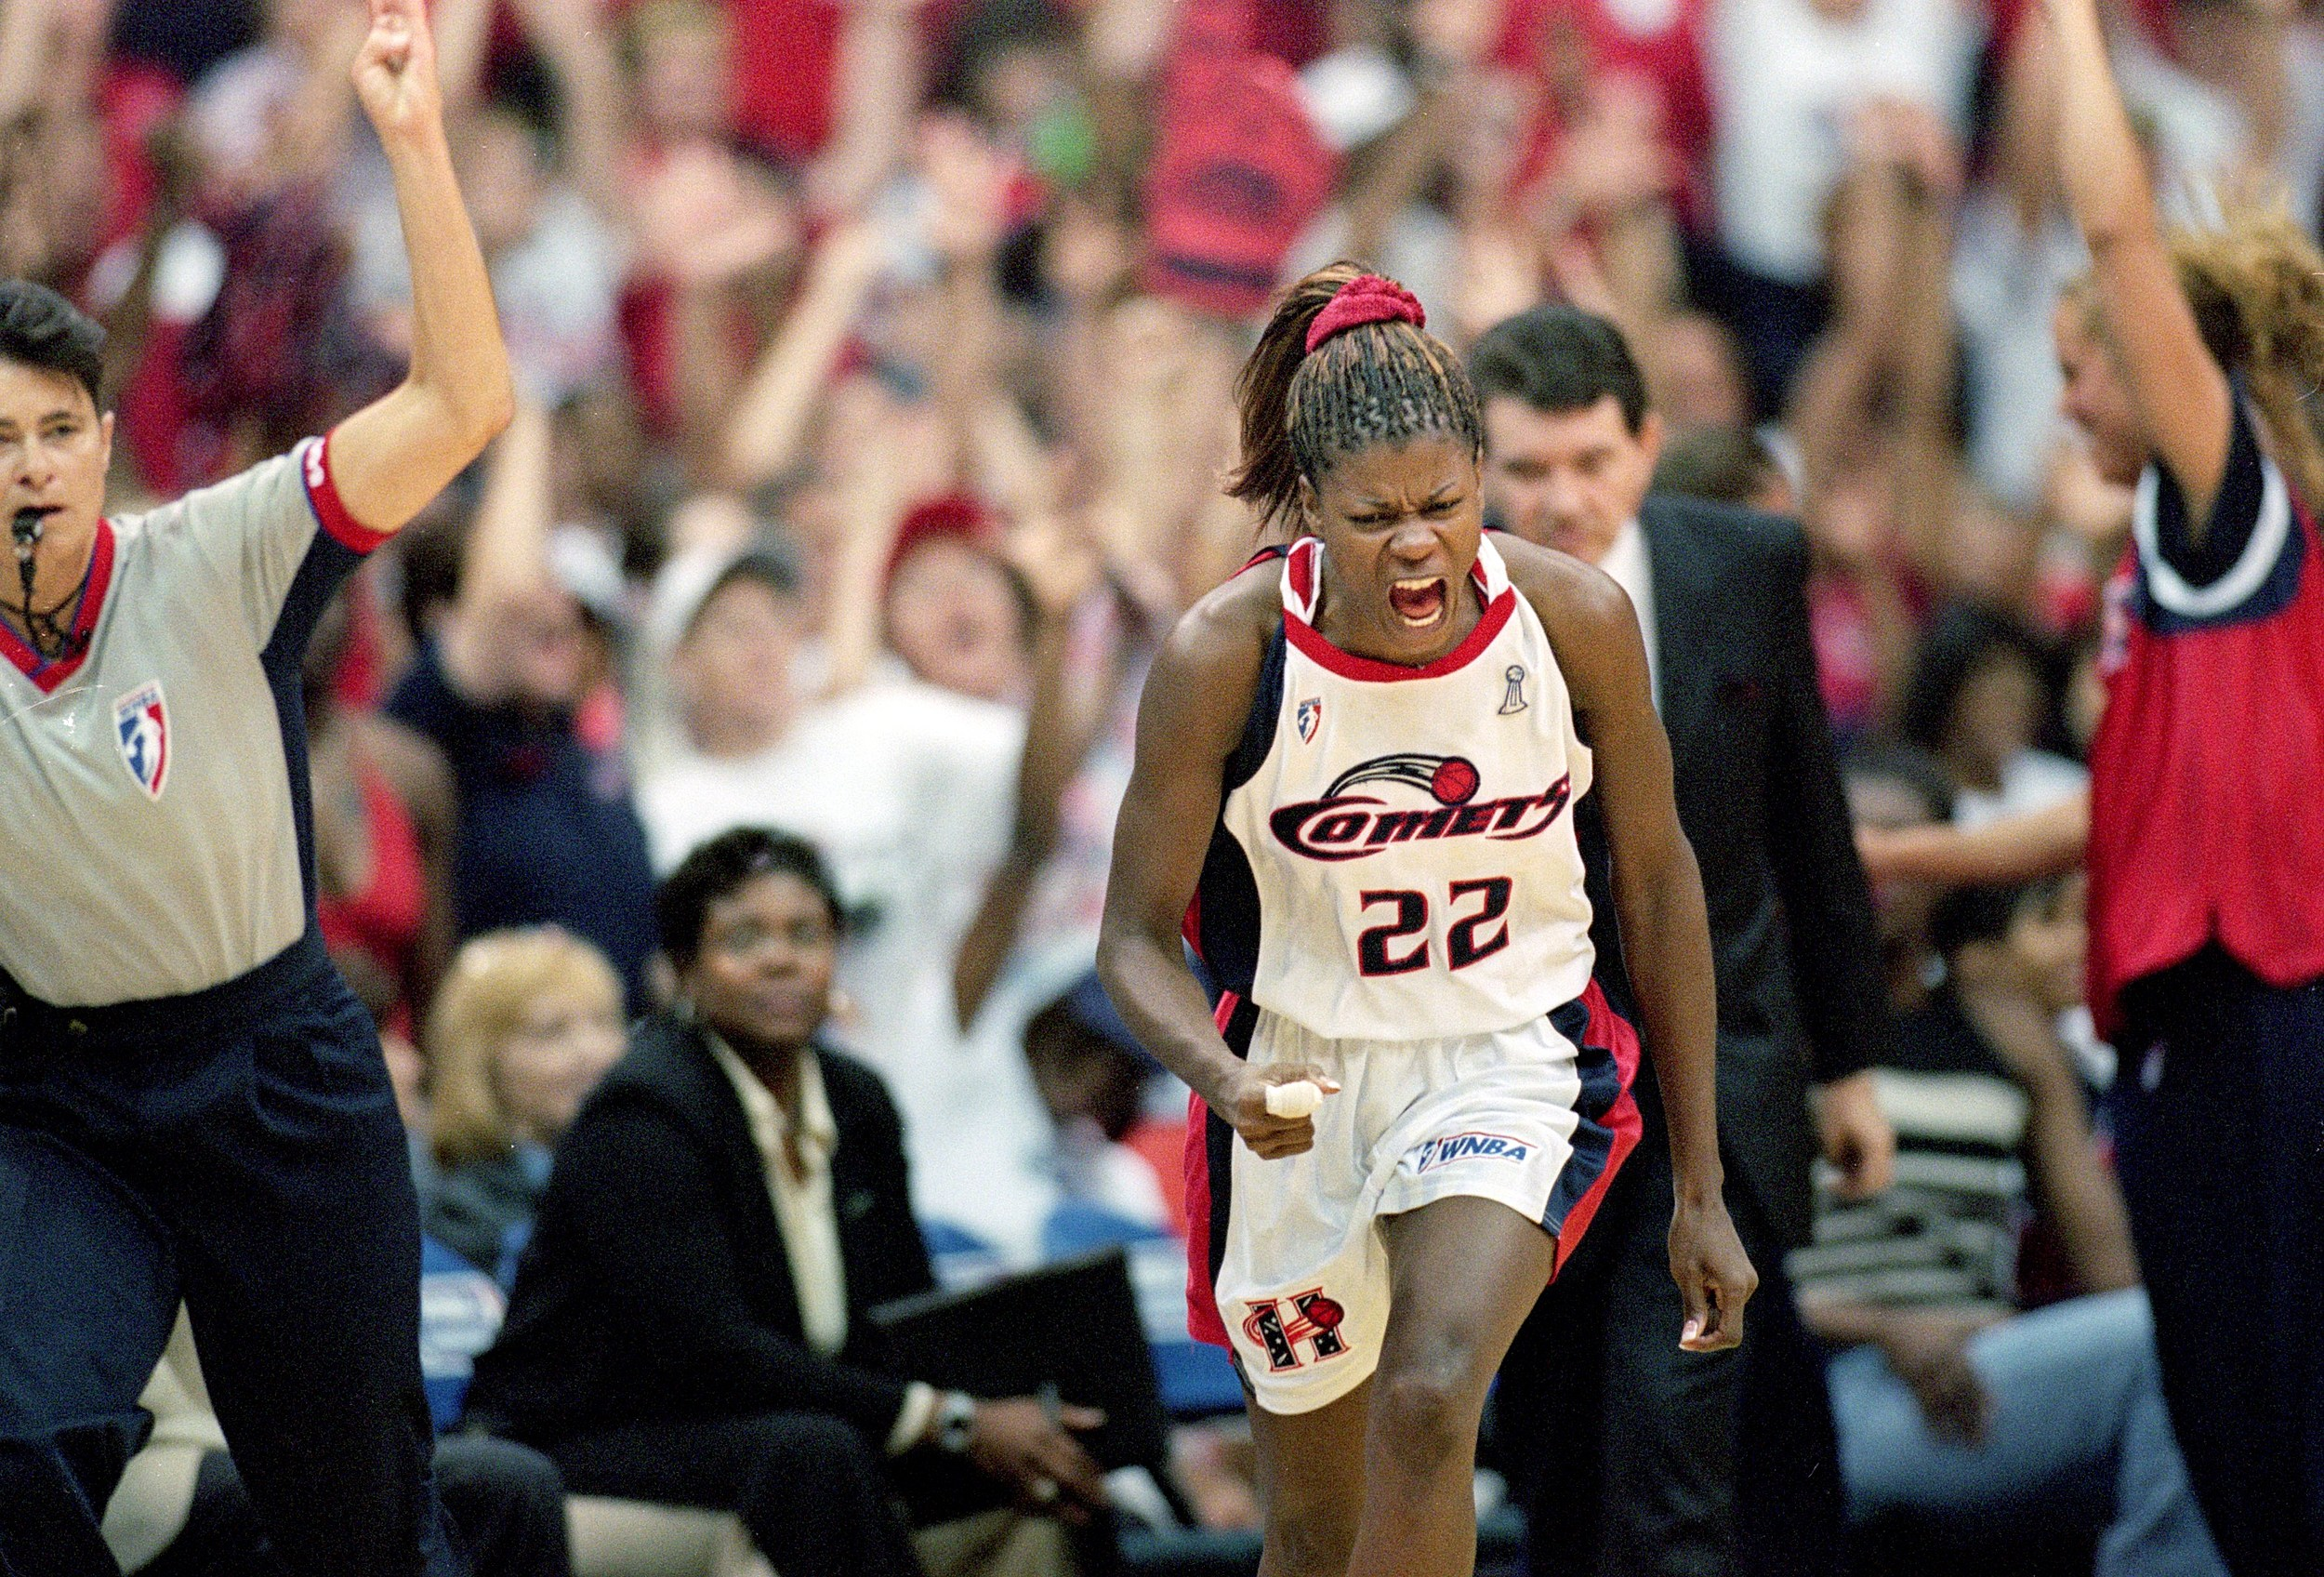 Sheryl Swoopes #22